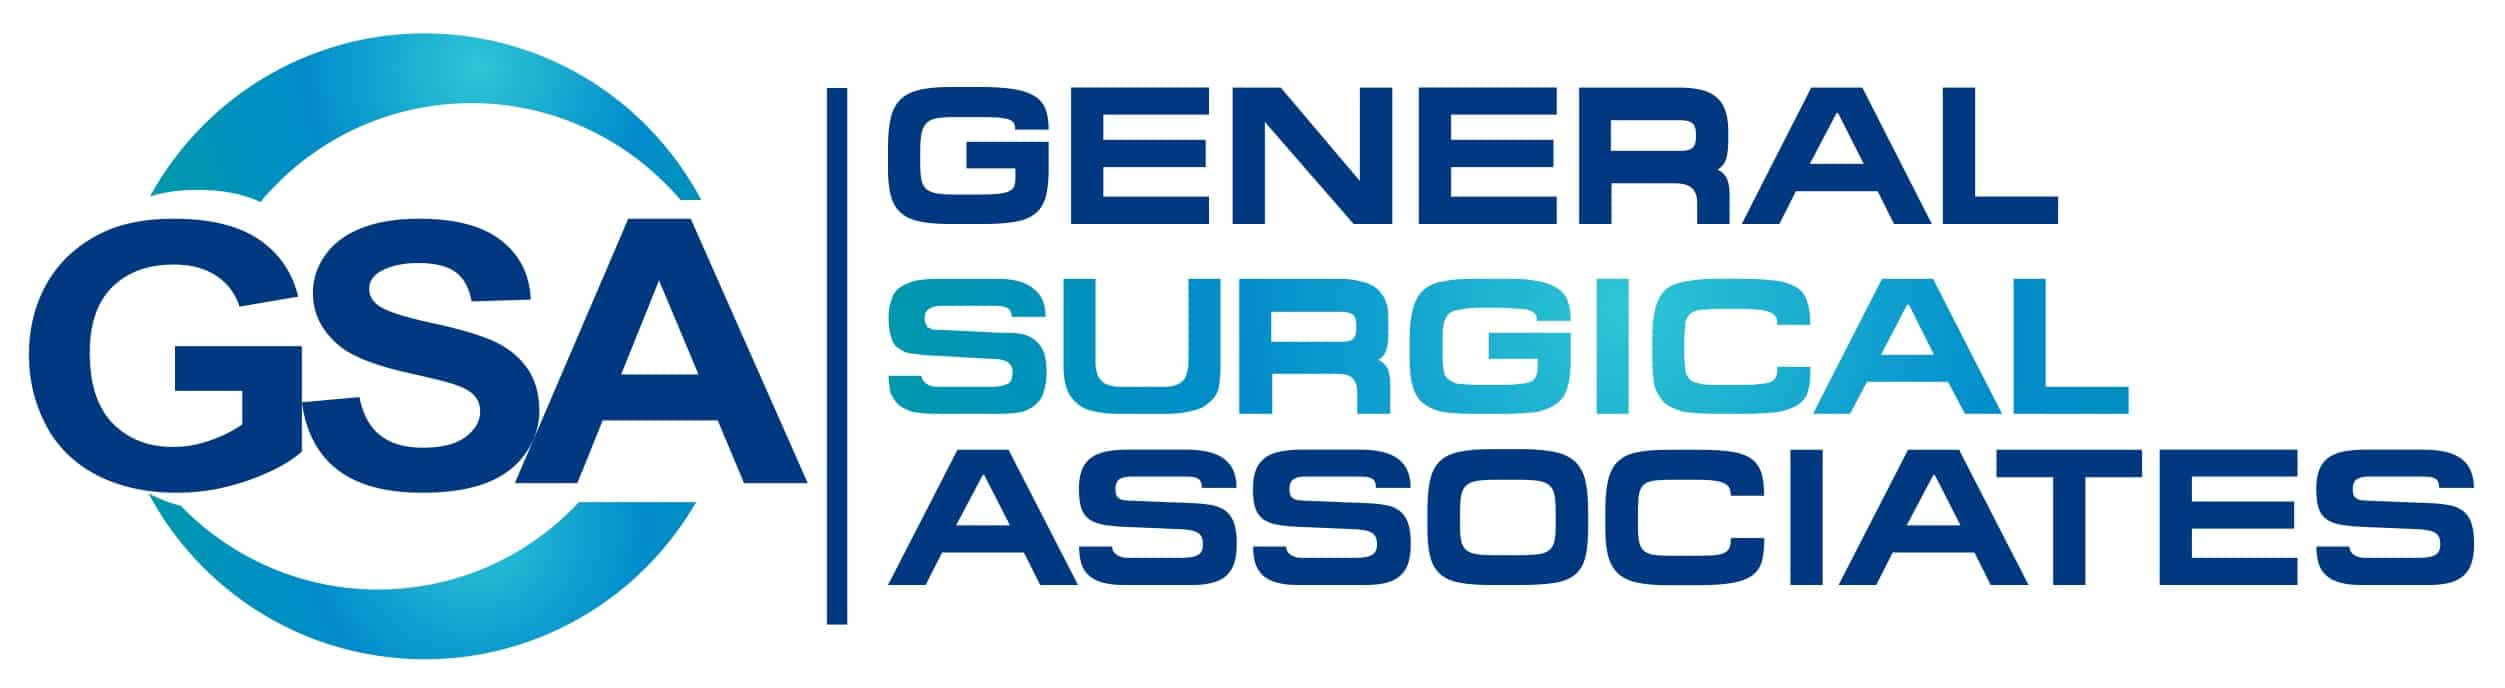 General Surgical Associates